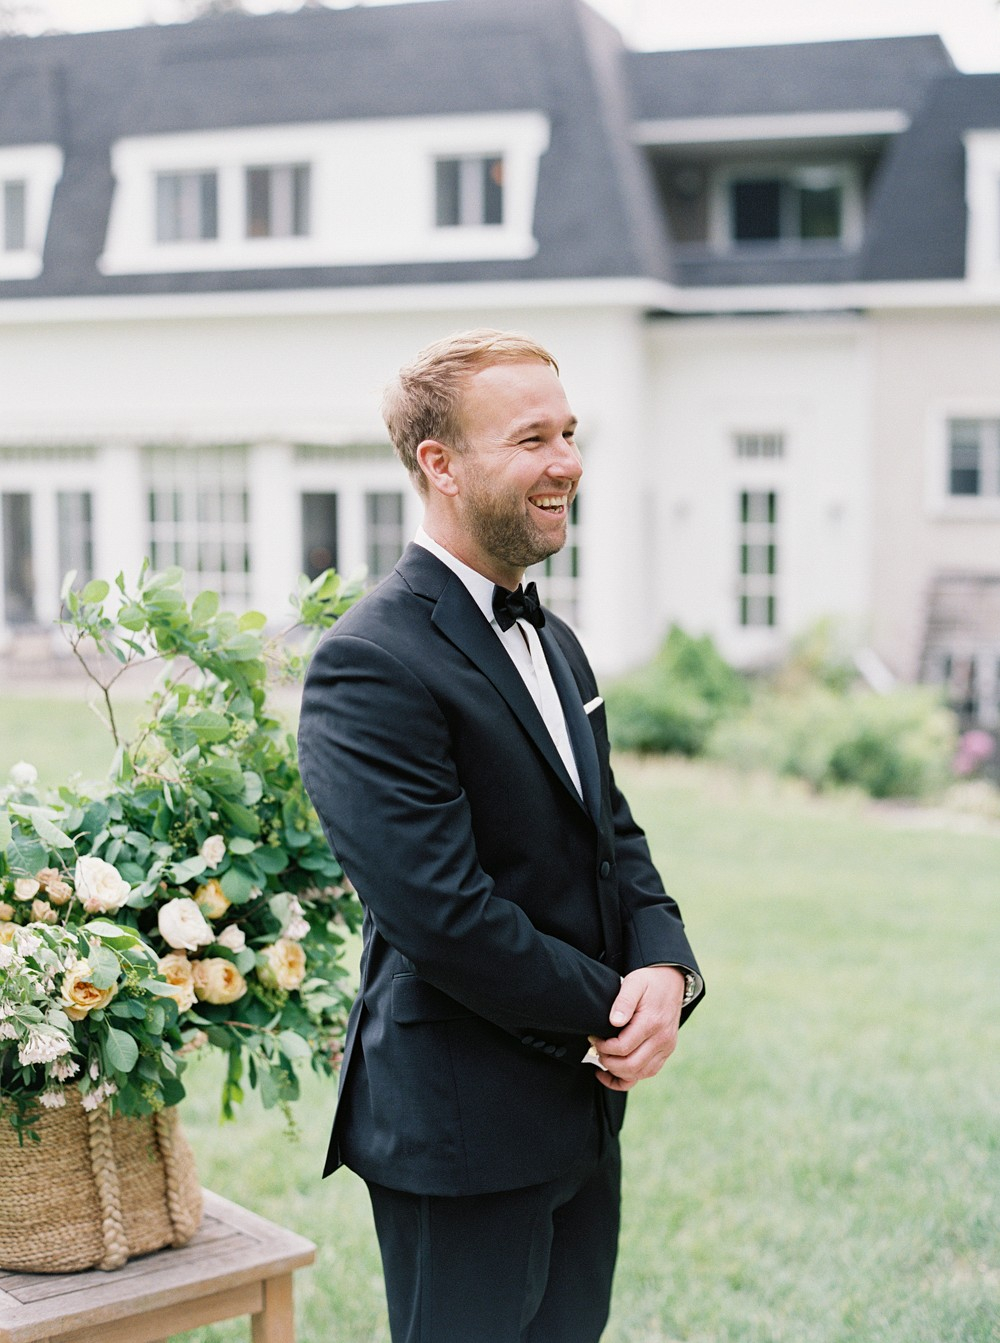 Groom at altar | Sophisticated Real Wedding in Ontario by When He Found Her on Wedding Sparrow